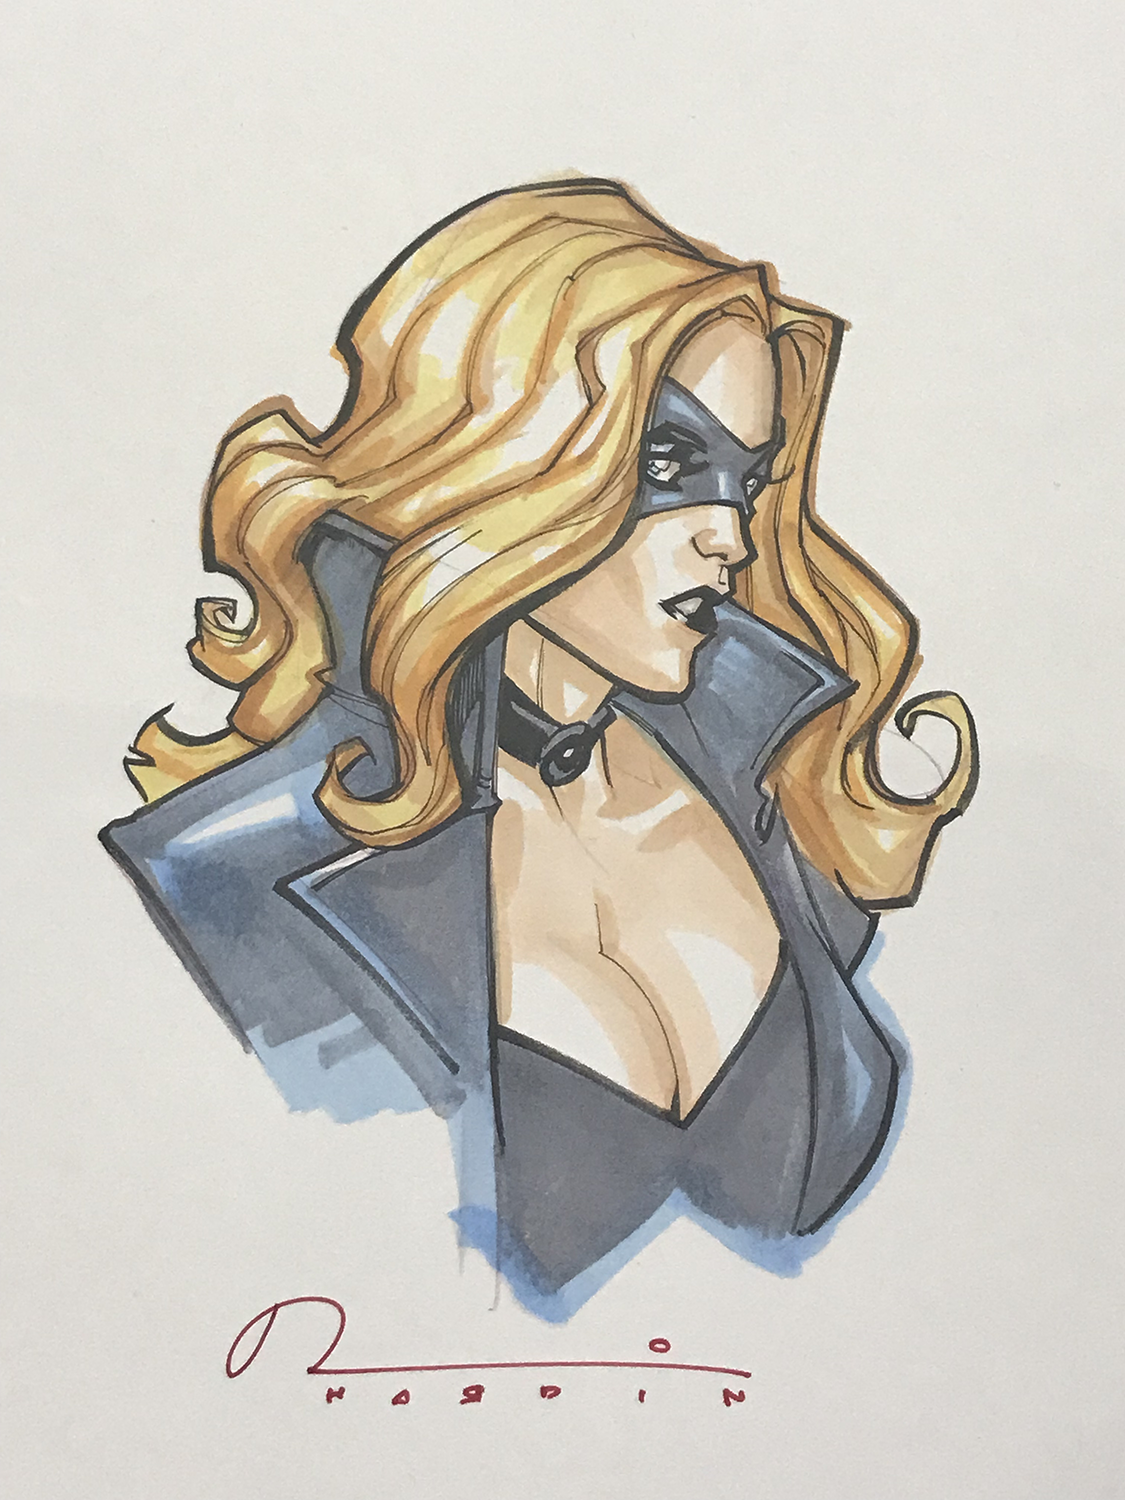 Event: Remarque or Sketch Card Commission